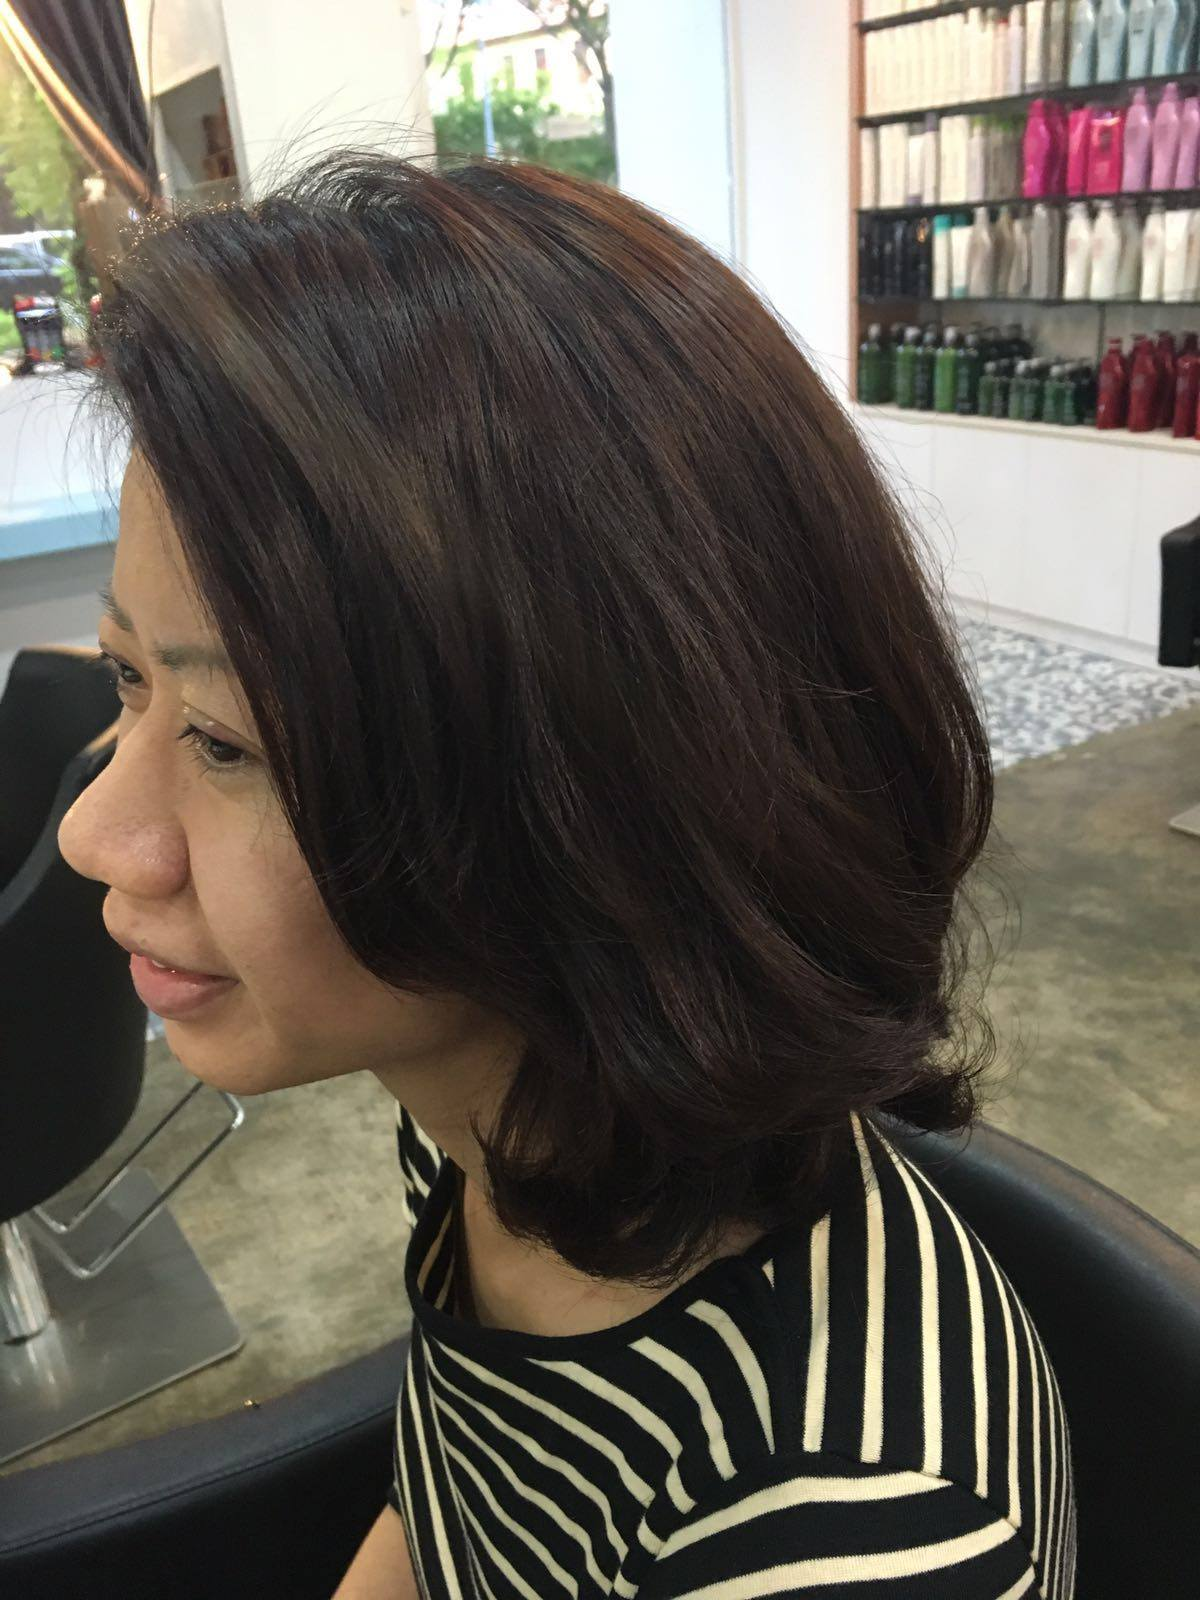 Perm by Jess Kong From Act Point Salon